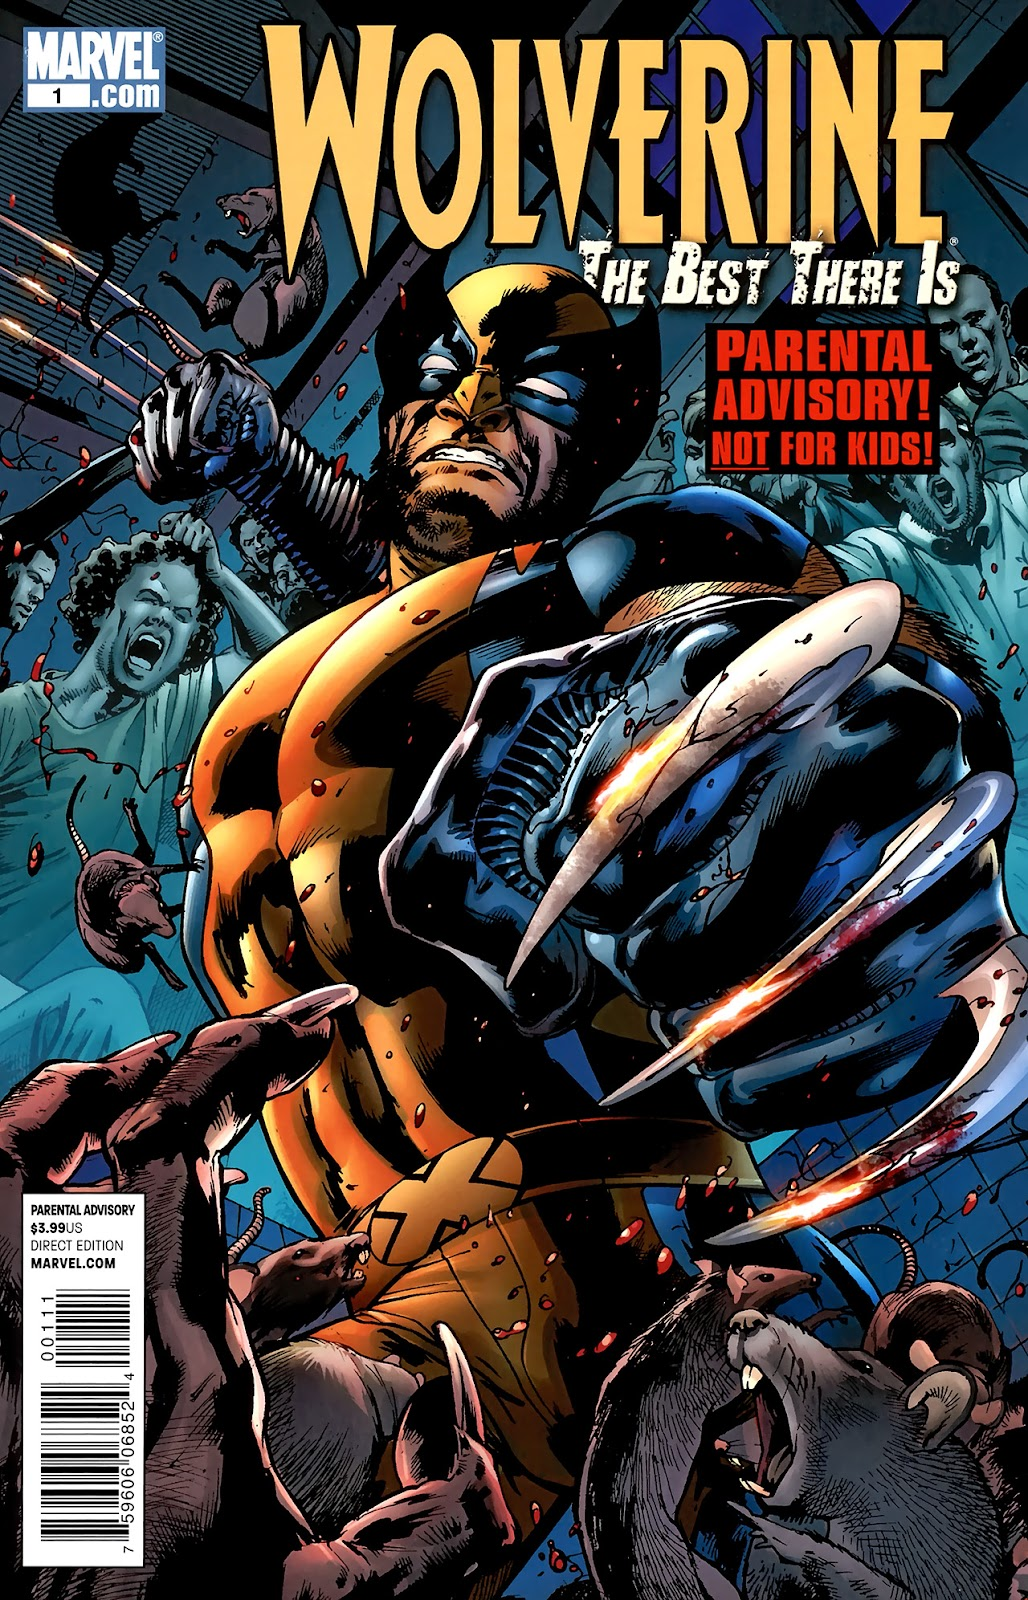 Wolverine: The Best There Is 1 Page 1